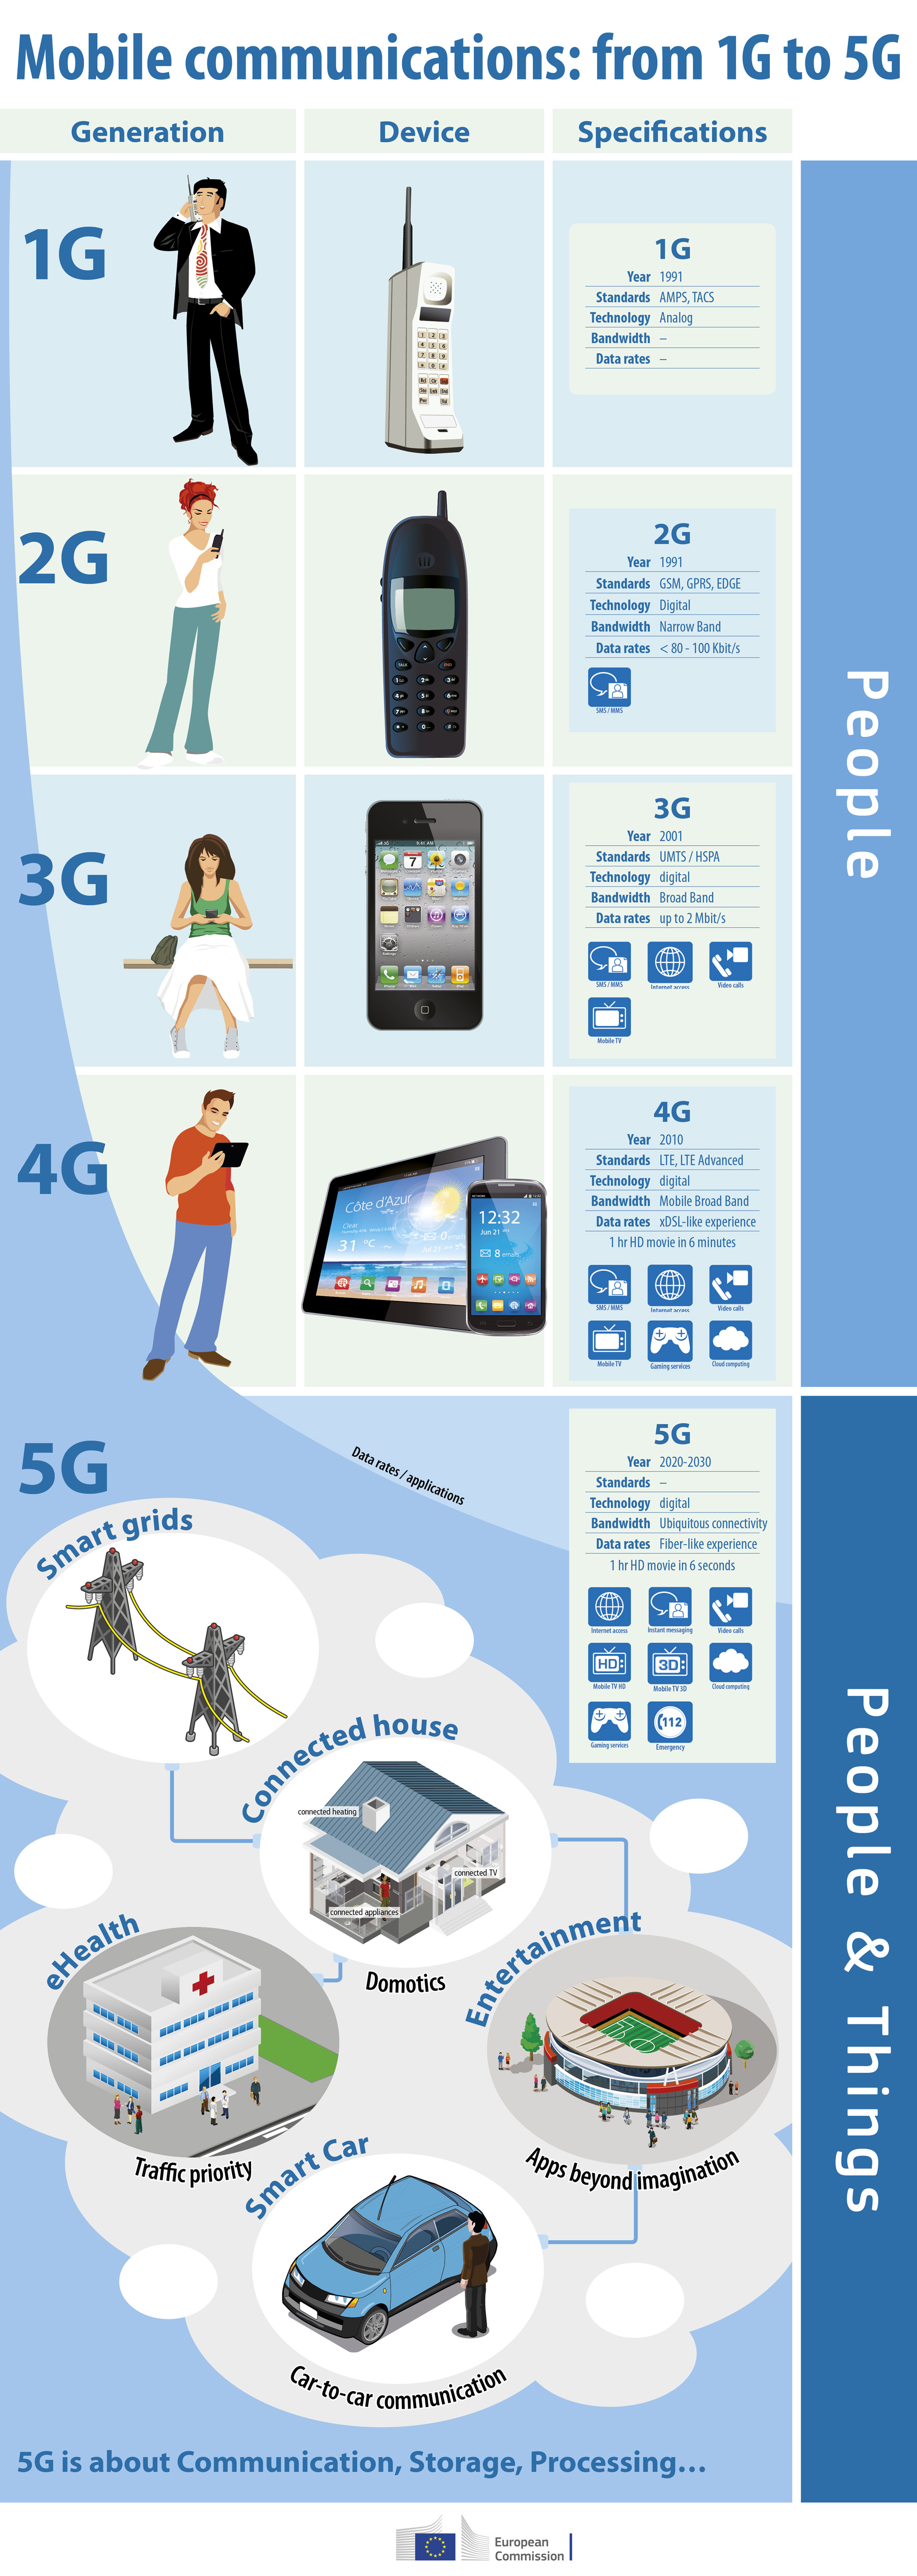 Infographic showing 1G to 5G mobile connectivity technology